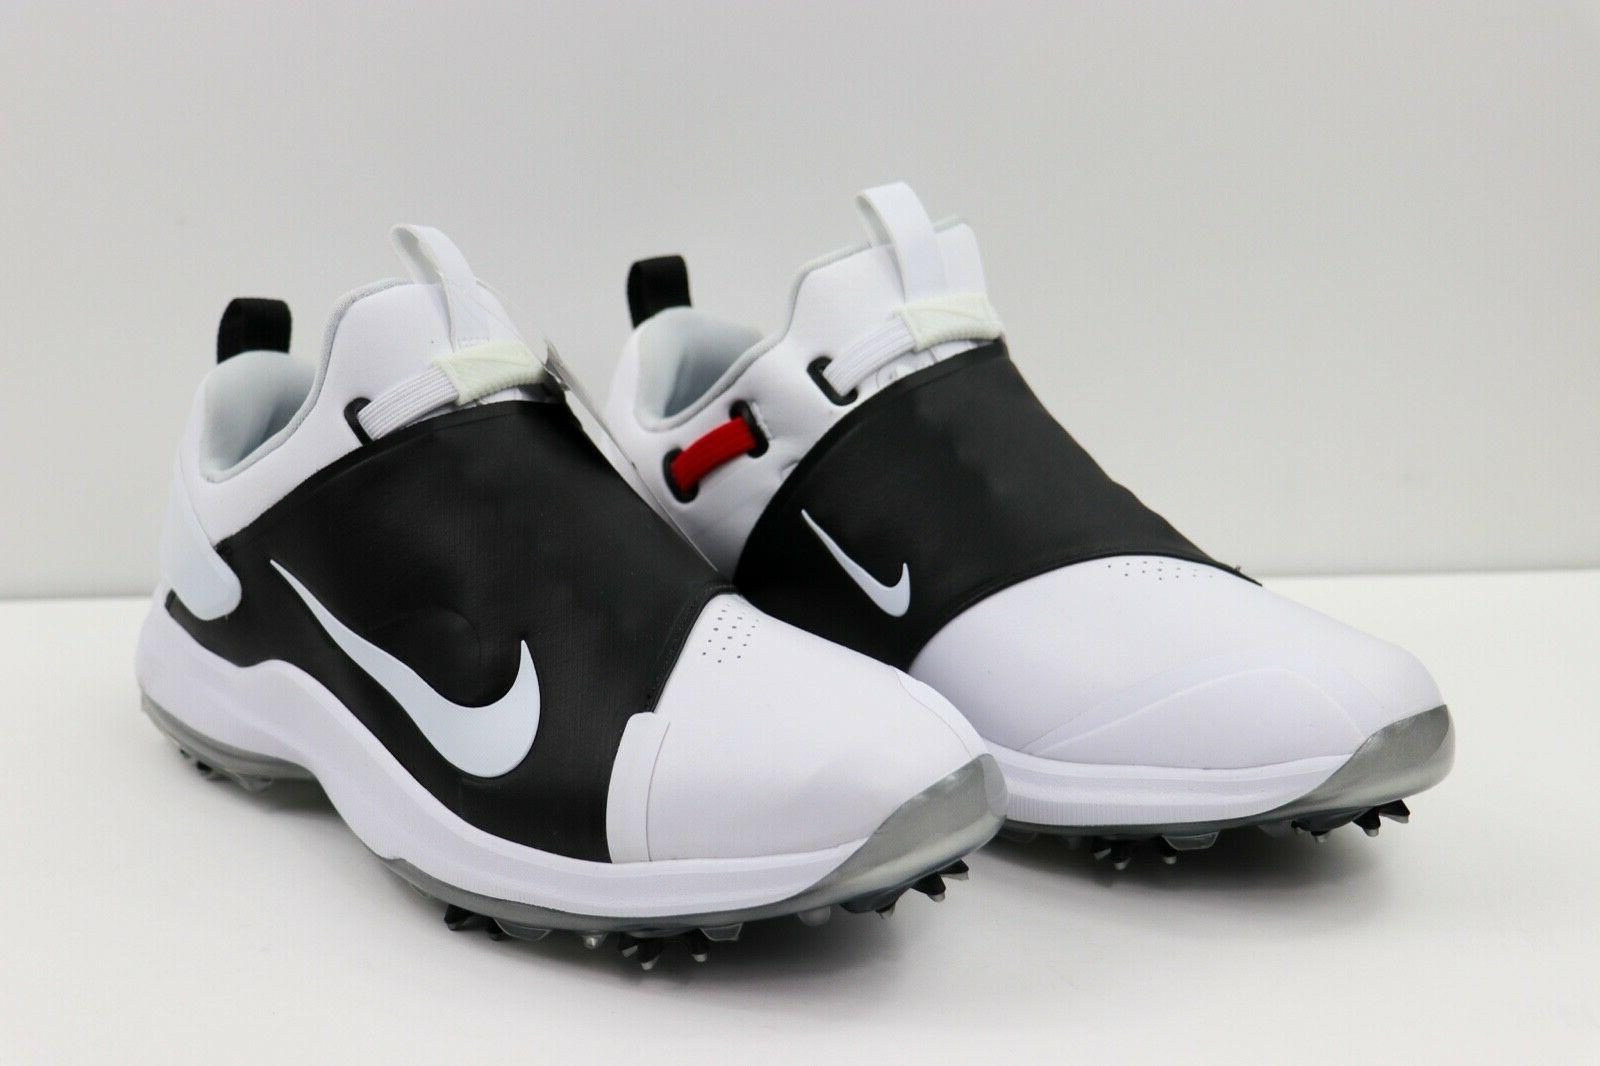 Nike Golf Cleats White AO2241-100